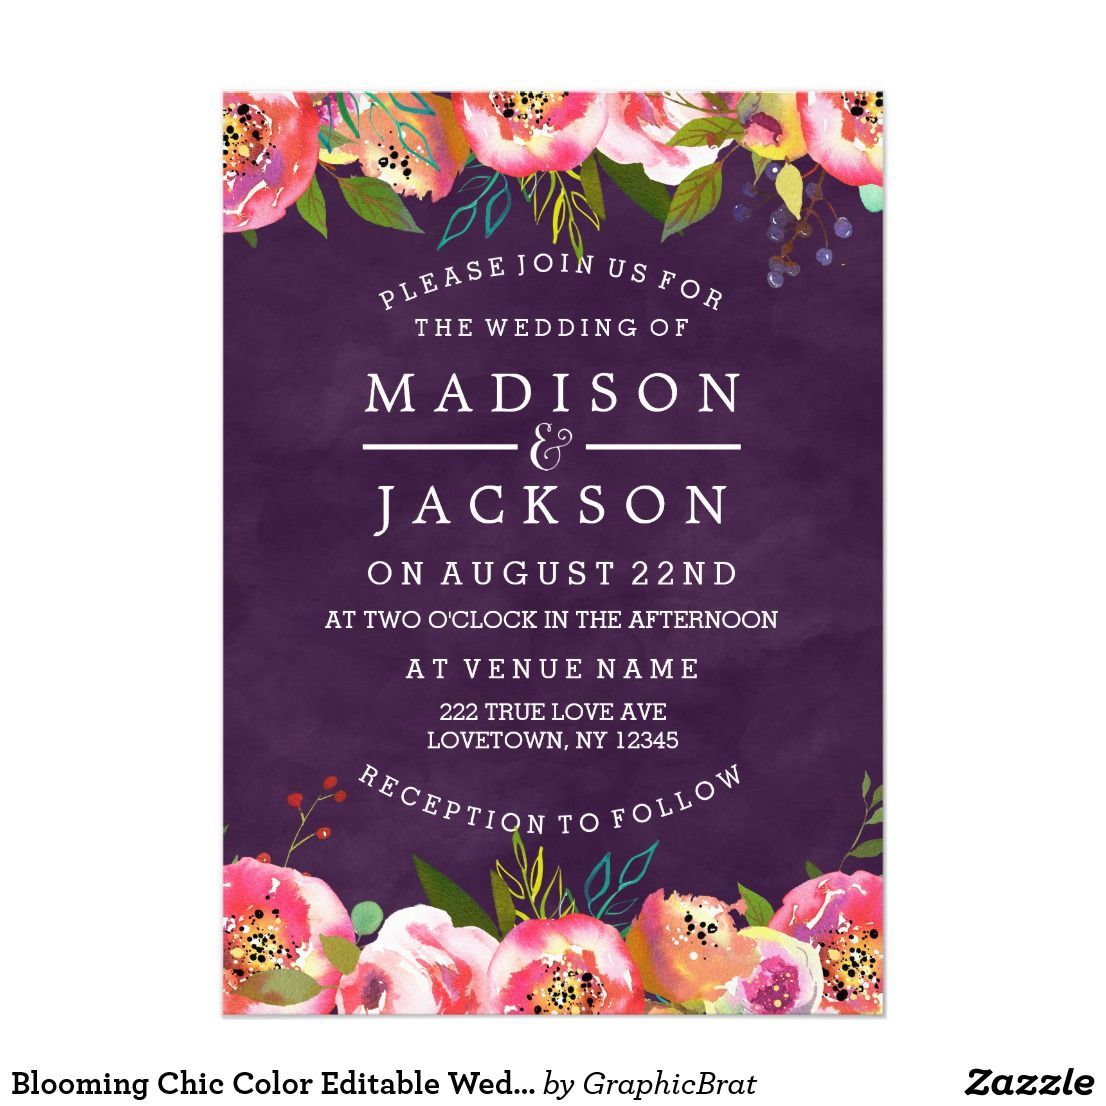 Blooming Chic Color Editable Wedding Invitations | Blooming Chic ...